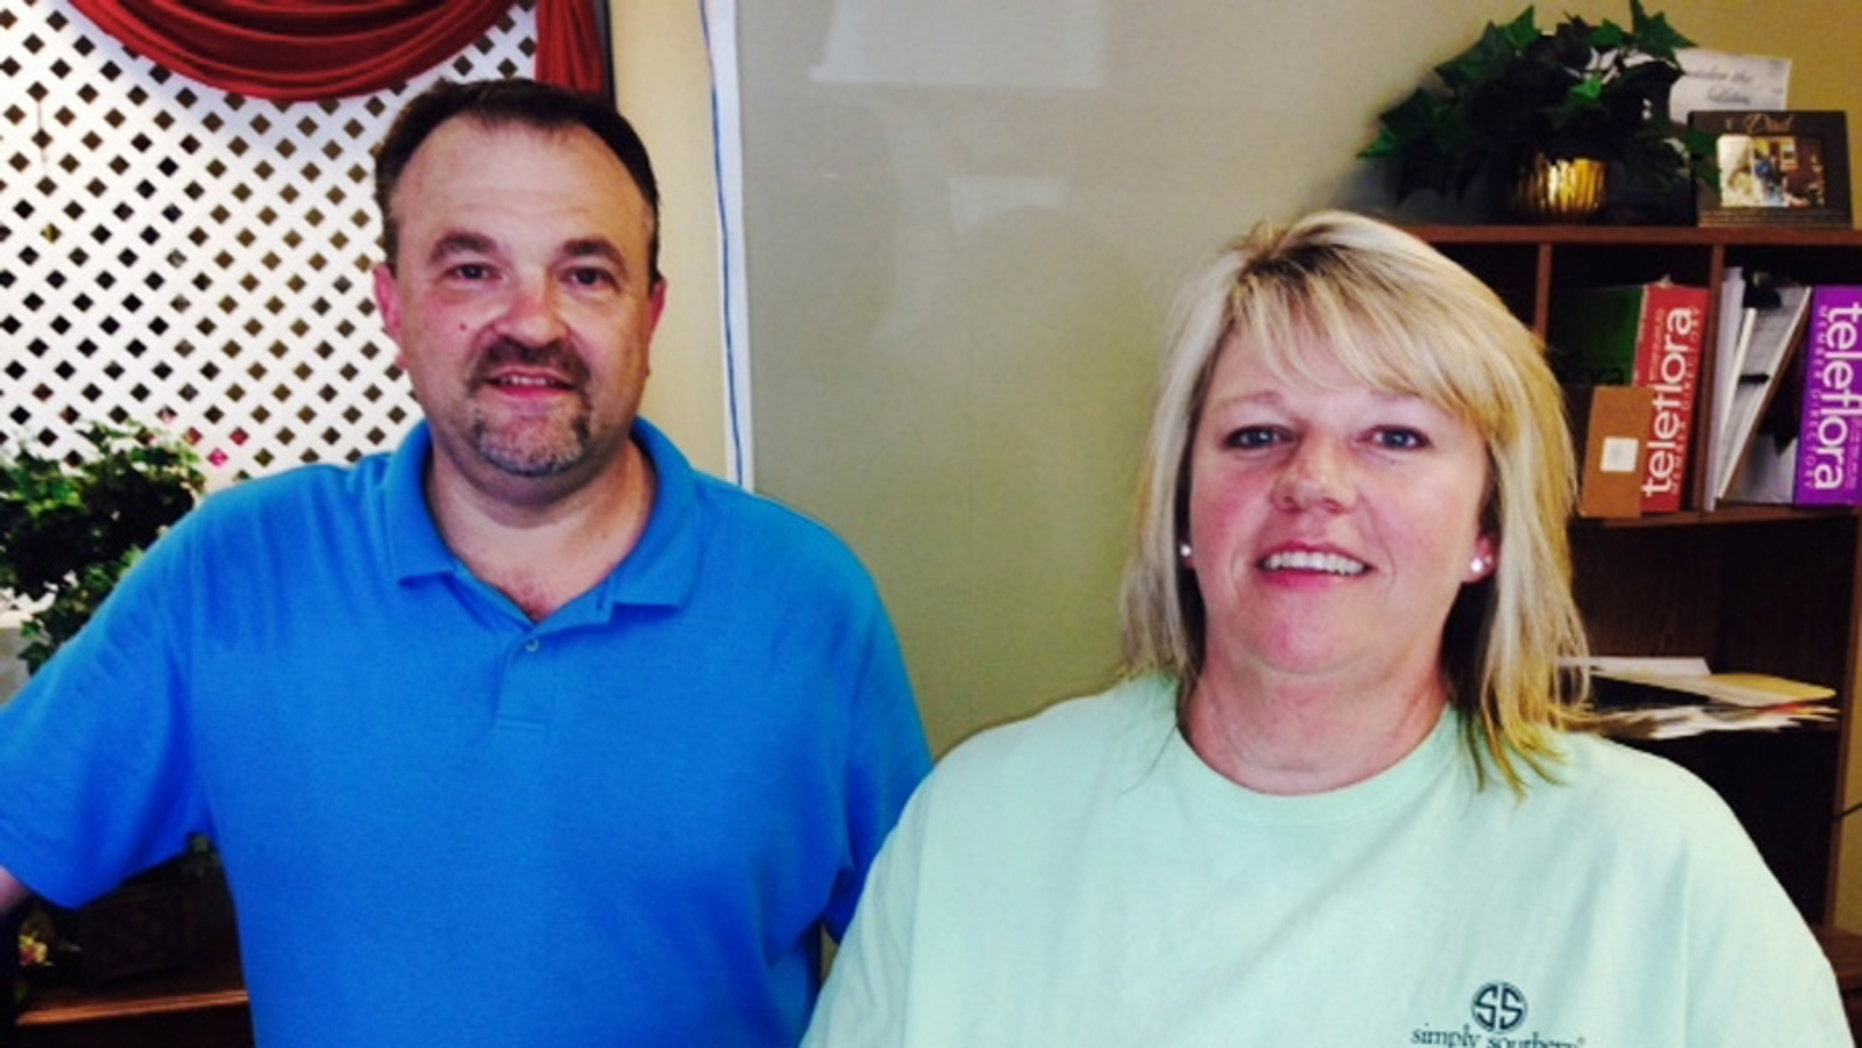 Todd Frady, left, and Debbie Dills of Frady's Florist in Kings Mountain, N.C., pose for a photo Thursday, June 18, 2015, after Dills called in the tip that ultimately led to the arrest of Dylann Storm Roof, the white man who police say killed people at a prayer meeting Wednesday at a black church in Charleston, S.C. Dills says she called Frady when she saw Roof driving, and Frady called a police officer he knew. (AP Photo/Steve Reed)